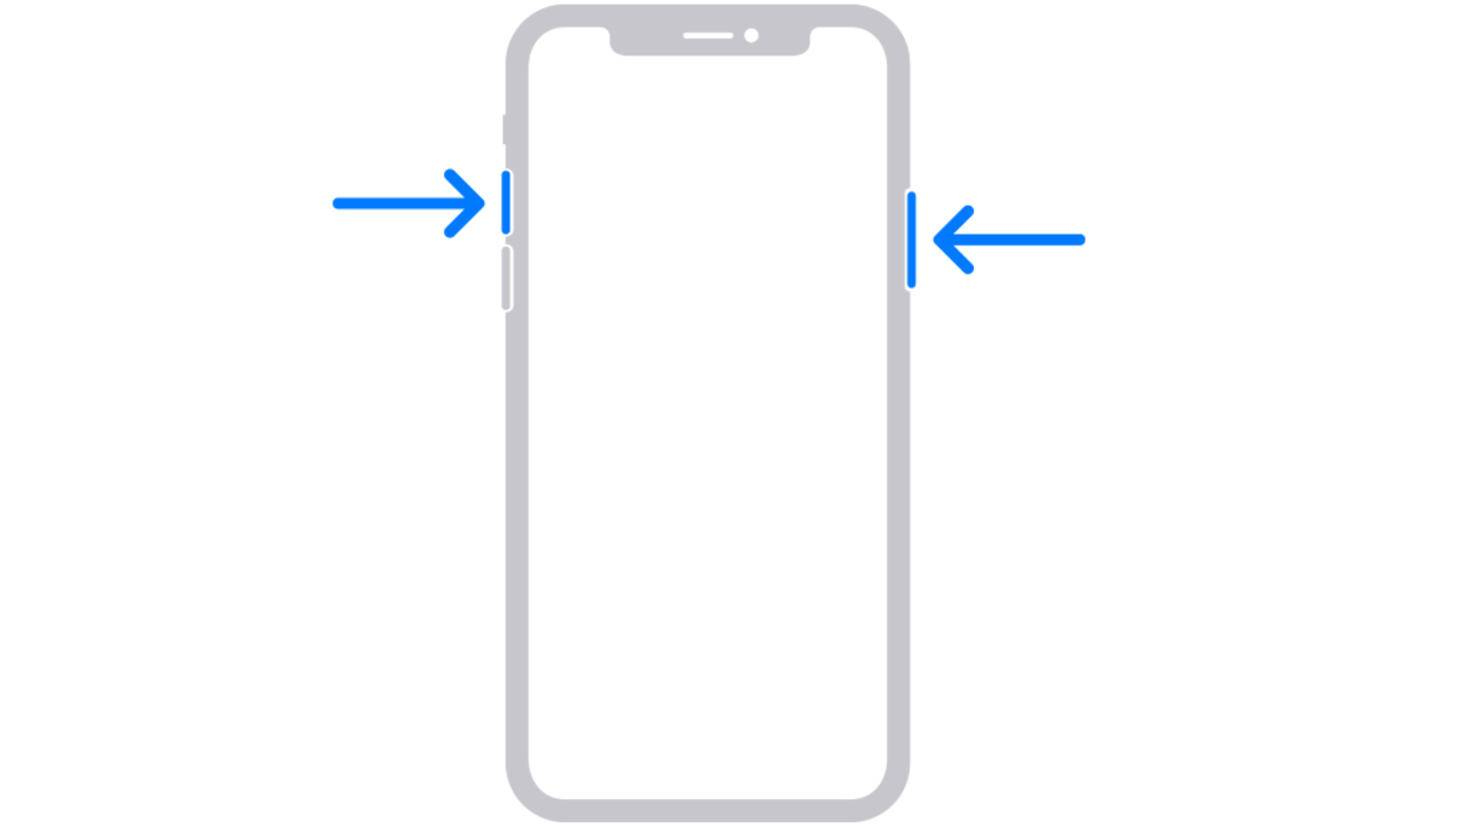 iPhone without home button screenshot